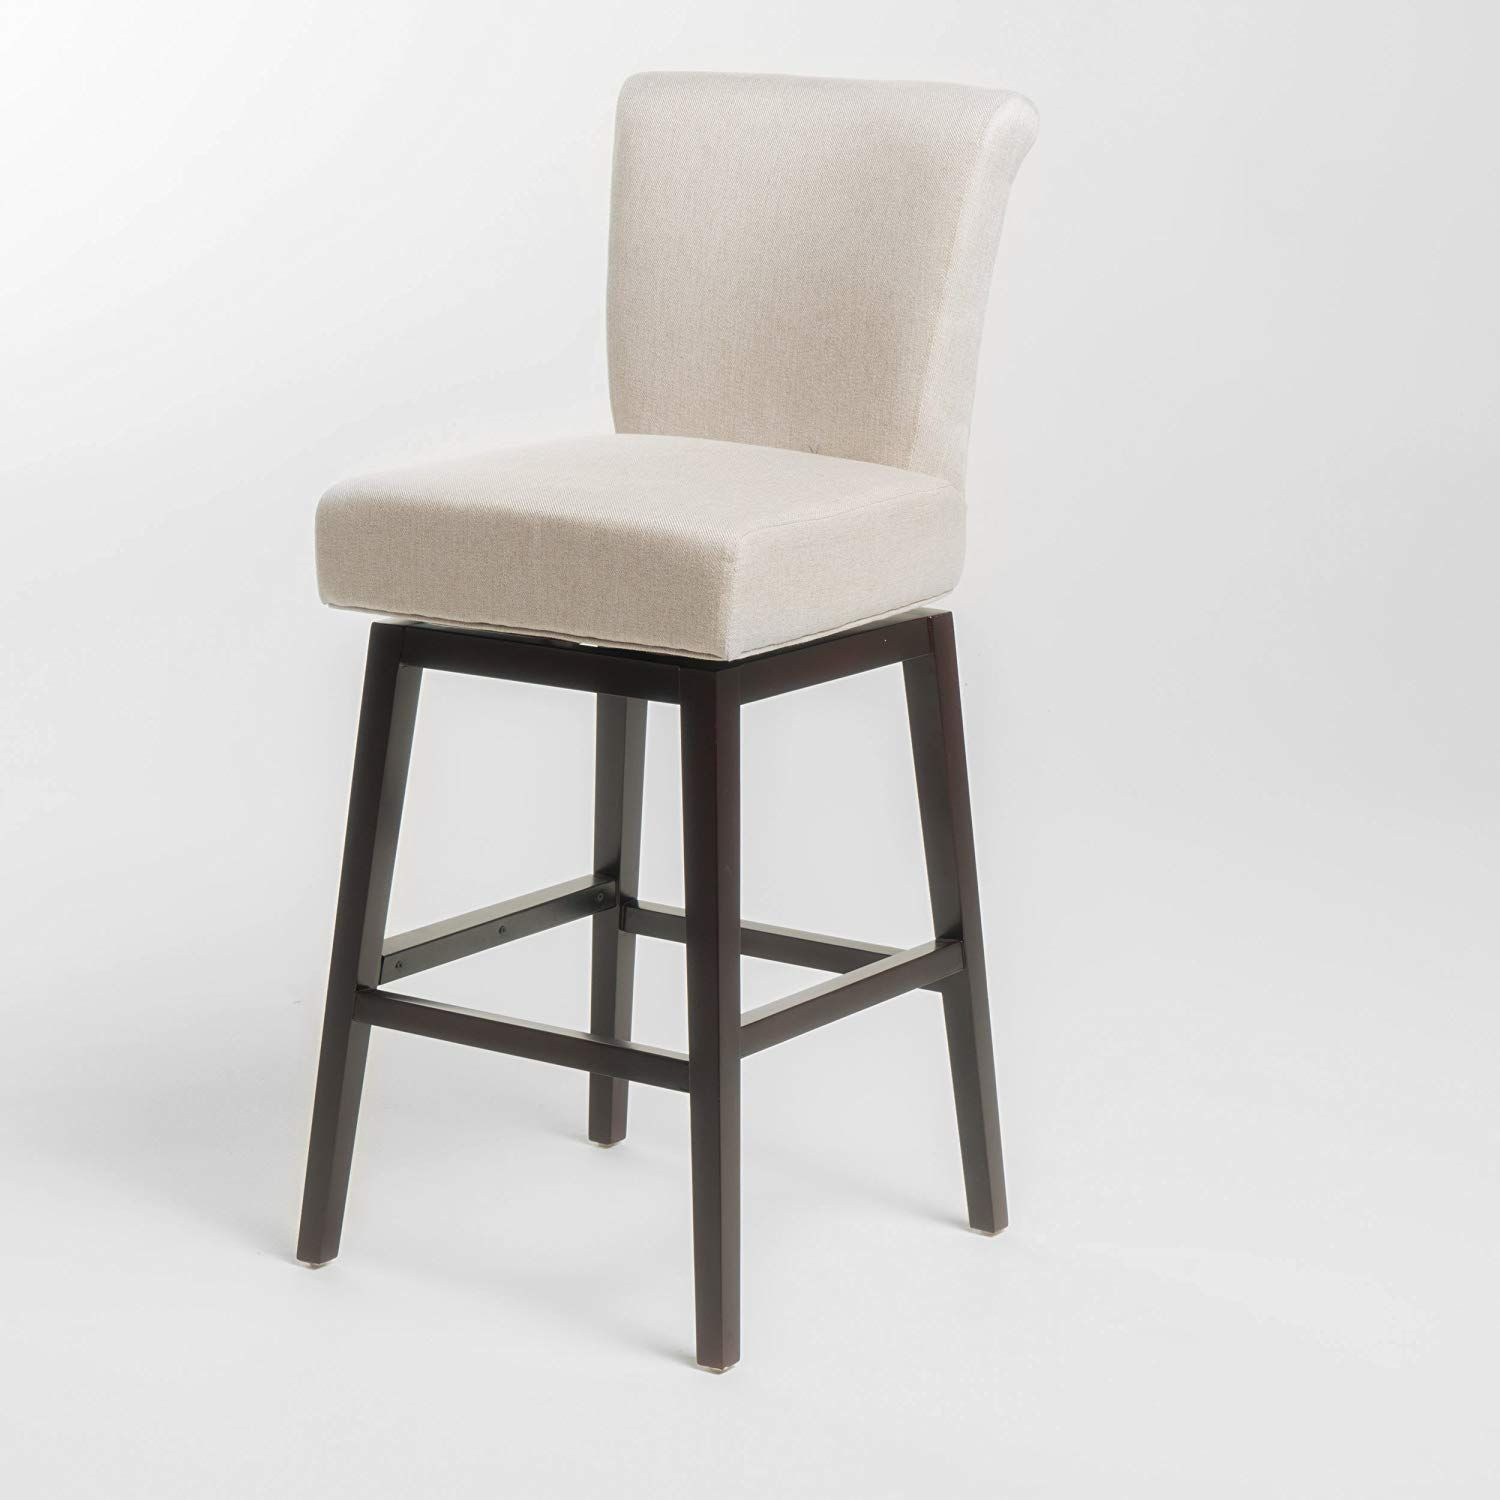 Wondrous Christopher Knight Home 300796 Tracy Fabric Swivel Barstool Caraccident5 Cool Chair Designs And Ideas Caraccident5Info